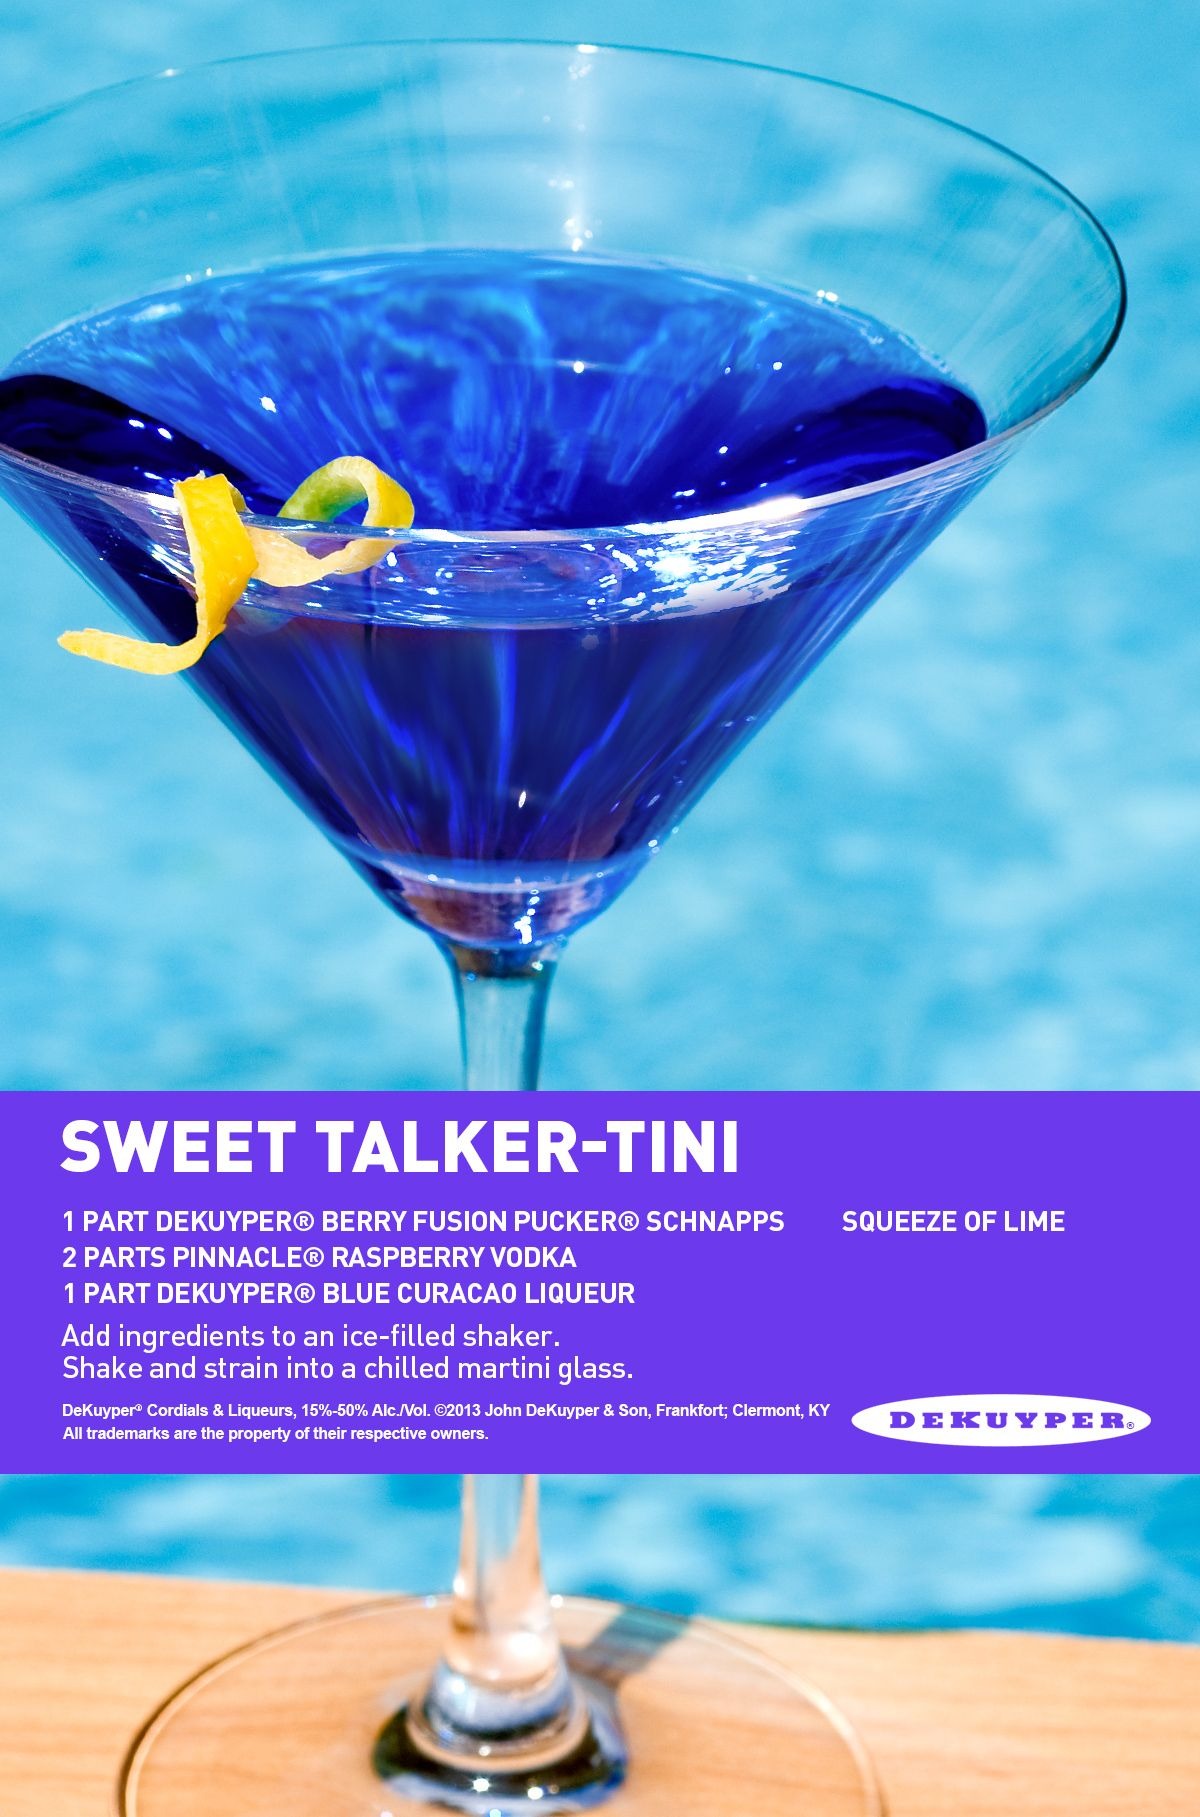 Sweet Talker-tini Recipe. 1 Part DeKuyper® Berry Fusion